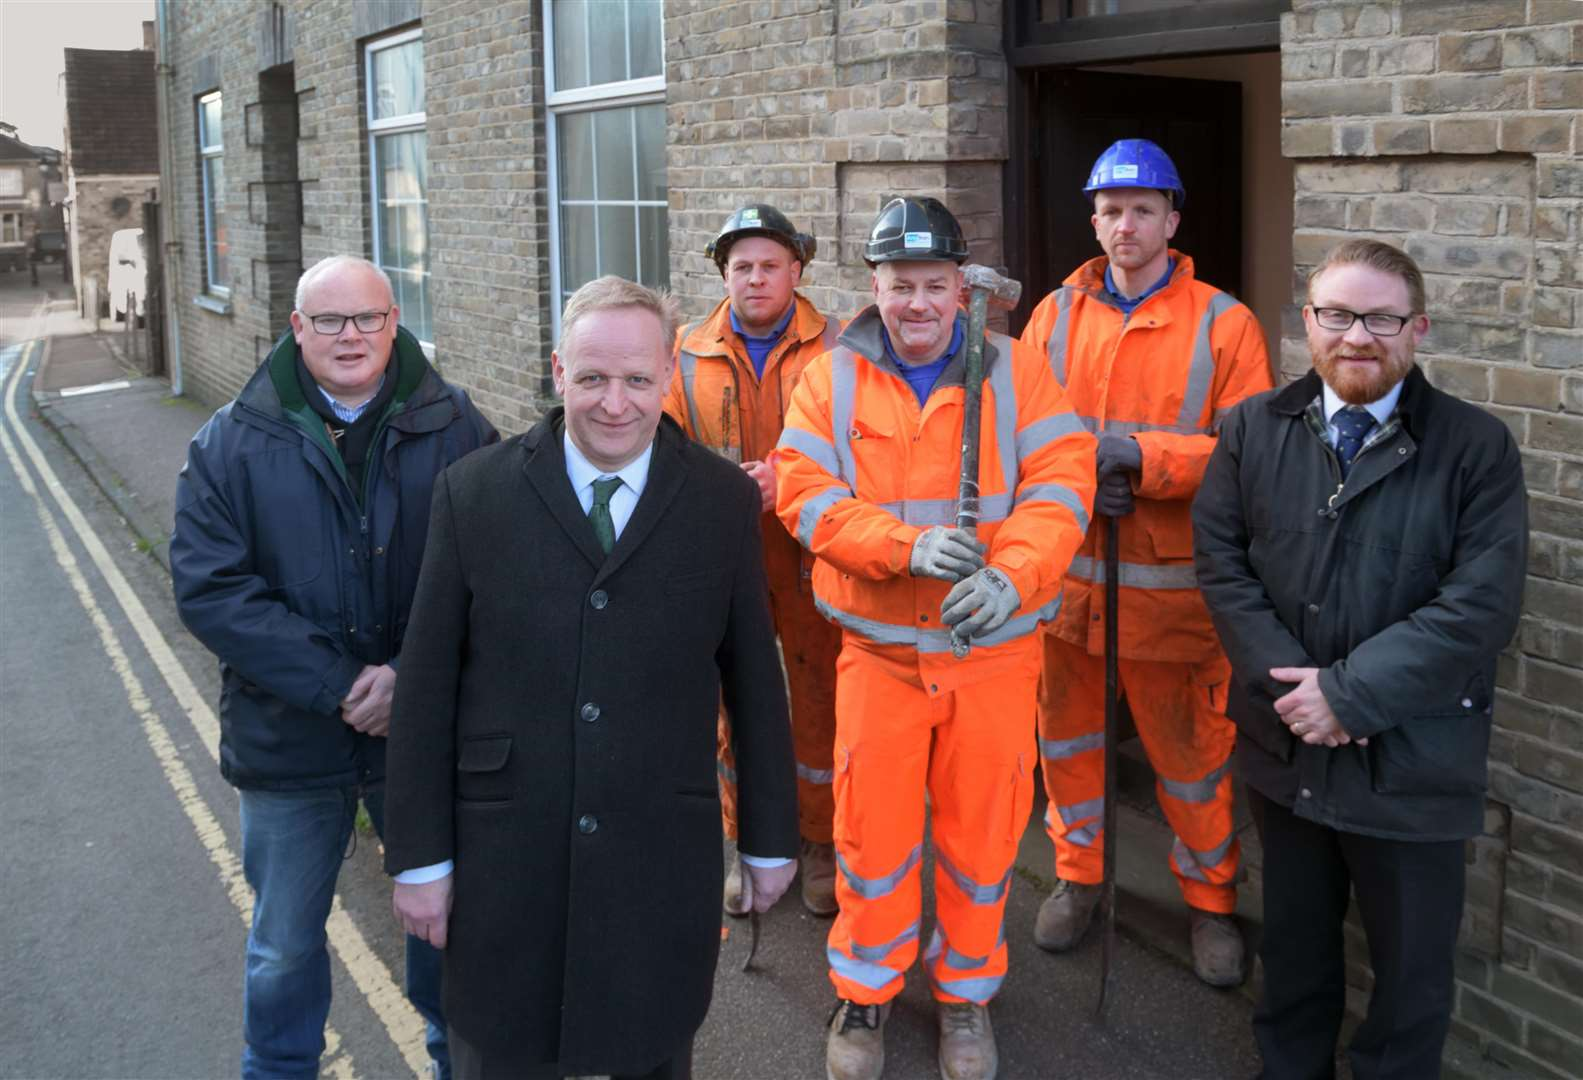 Work begins on the National Centre for Thomas Gainsborough Project in Sudbury, with the demolition of the old Labour Exchange adjacent to Gainsborough's House. Pictured from left to right: Simon Barrett, cabinet member for growth at Babergh District Council; Mark Bills, executive director of Gainsborough's House; John Smith, site supervisor at Anglian Demolition; Darren Harley, foreman at Anglian Demolition; Dean Hart, plant operator at Anglian Demolition; Arthur Charvonia, chief executive of Babergh District Council. Submitted photo. (7153081)